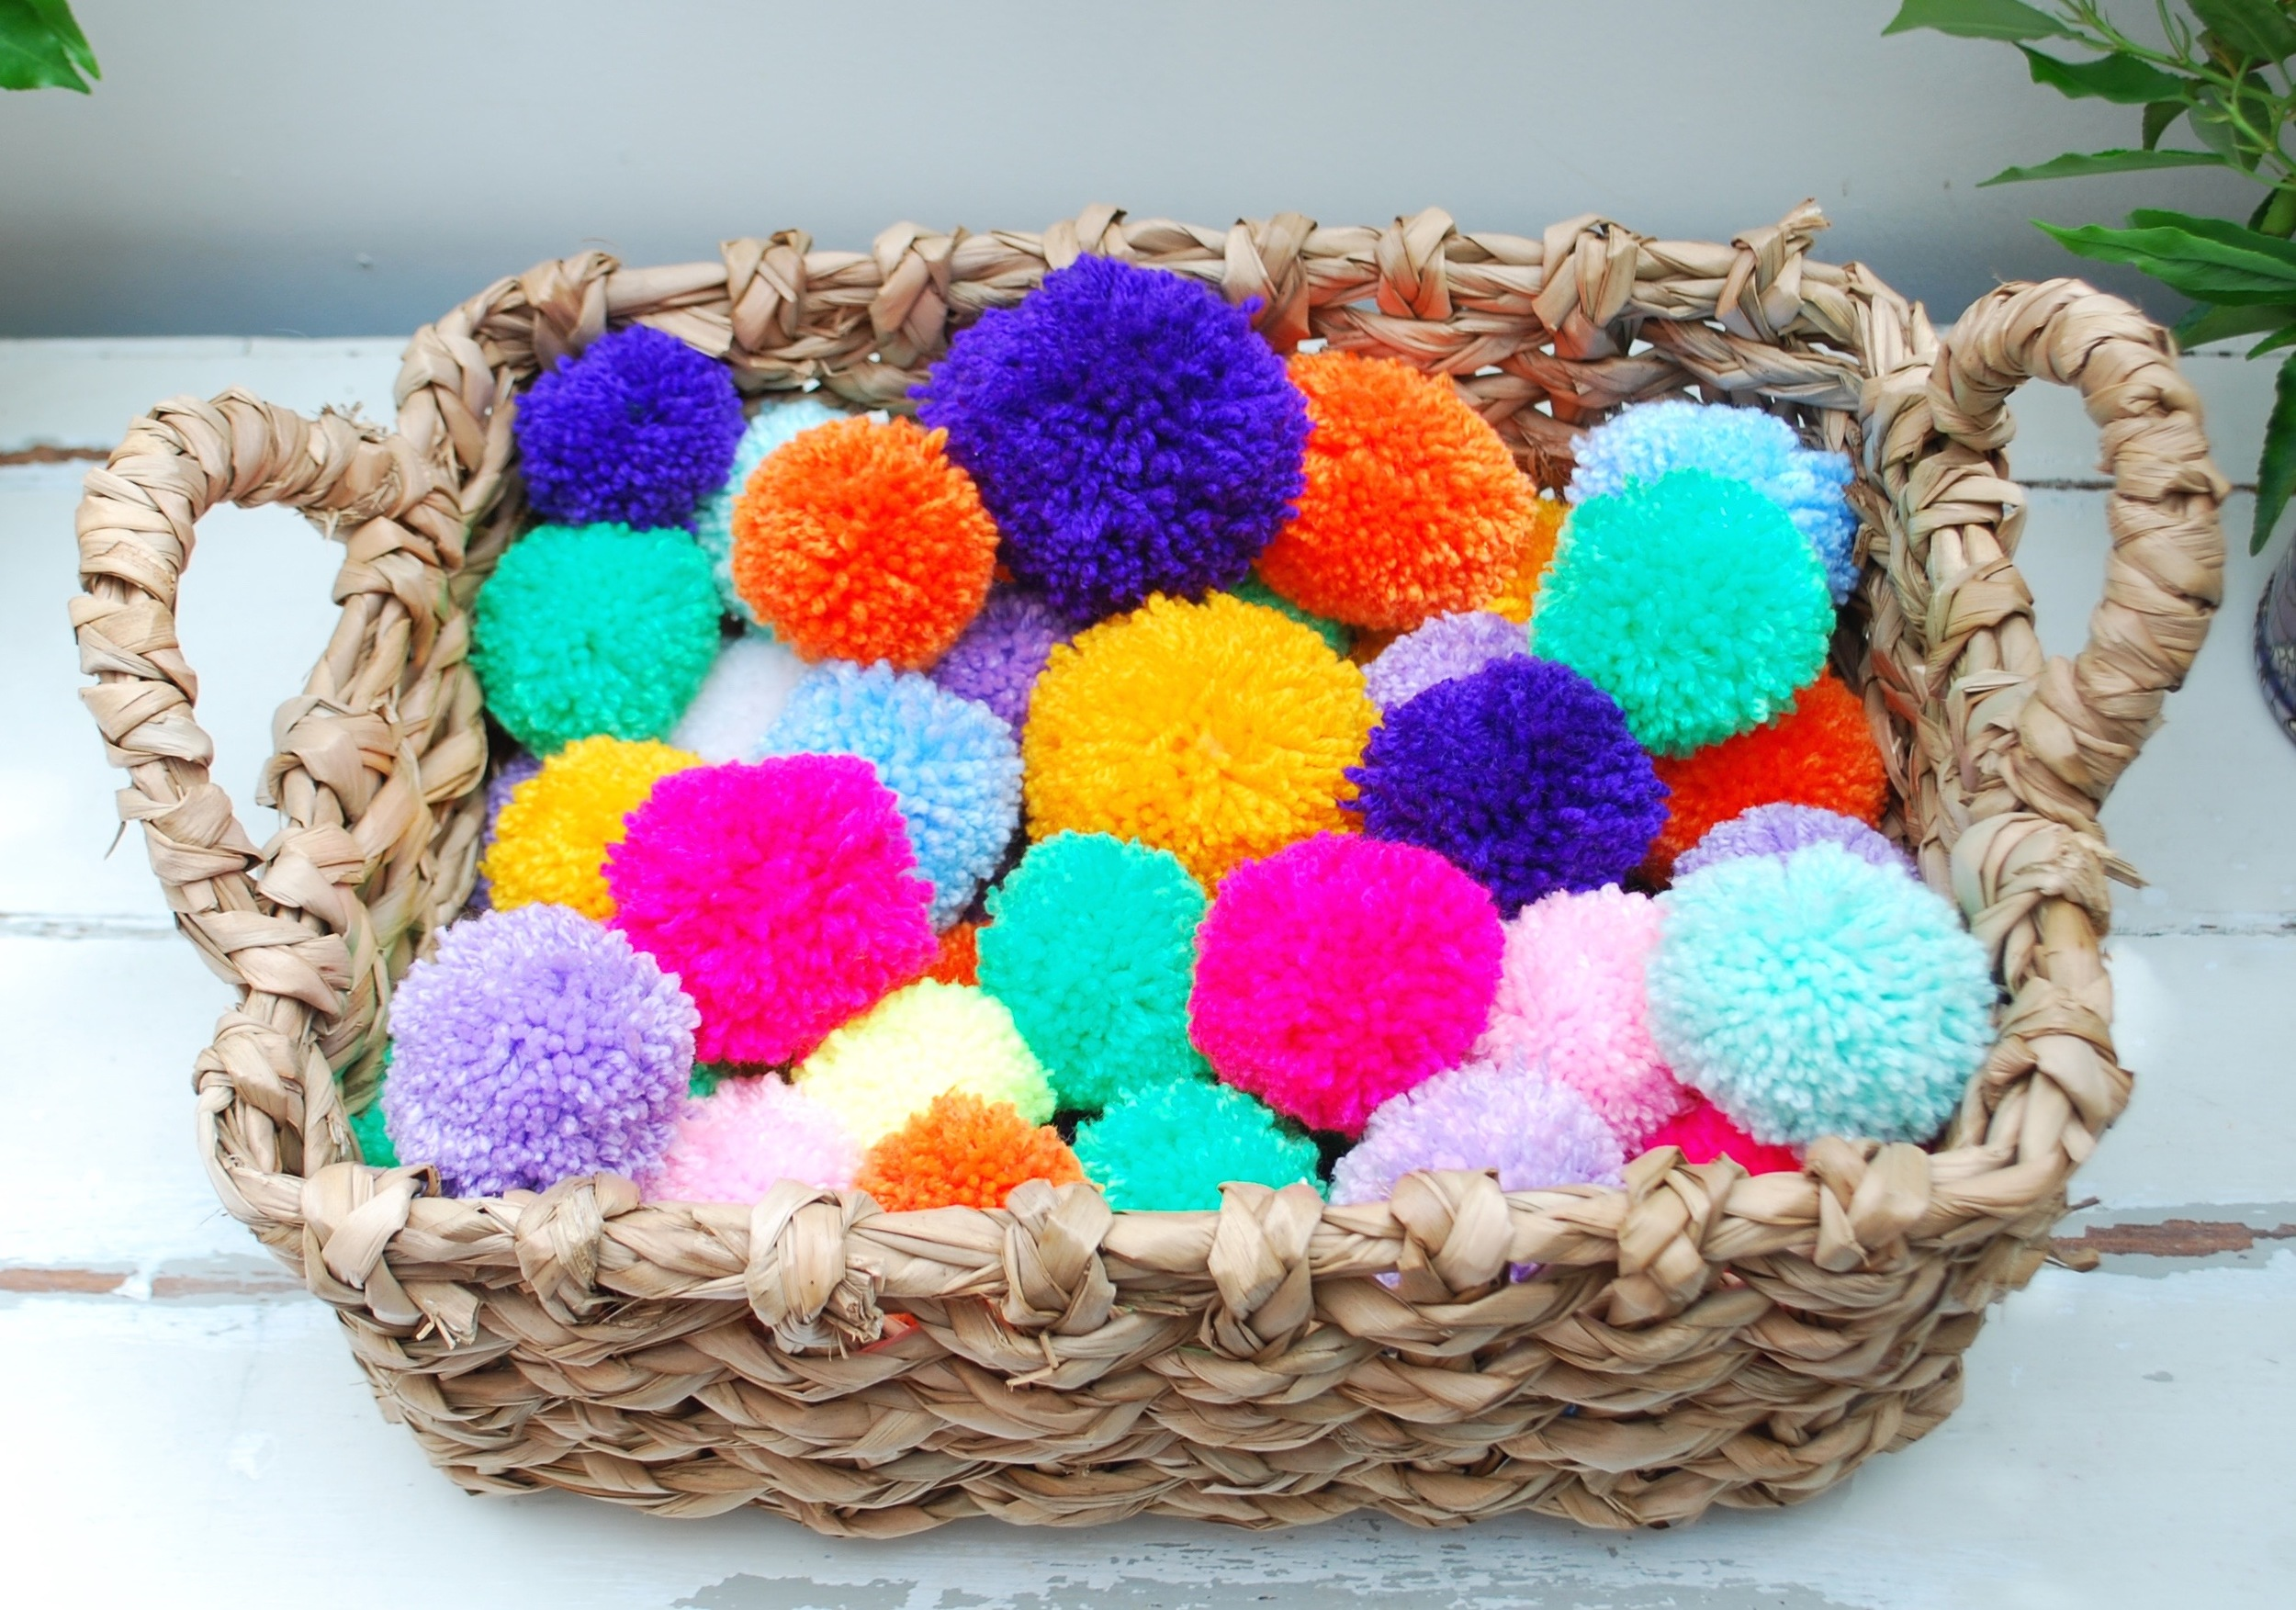 A basket of Pom poms